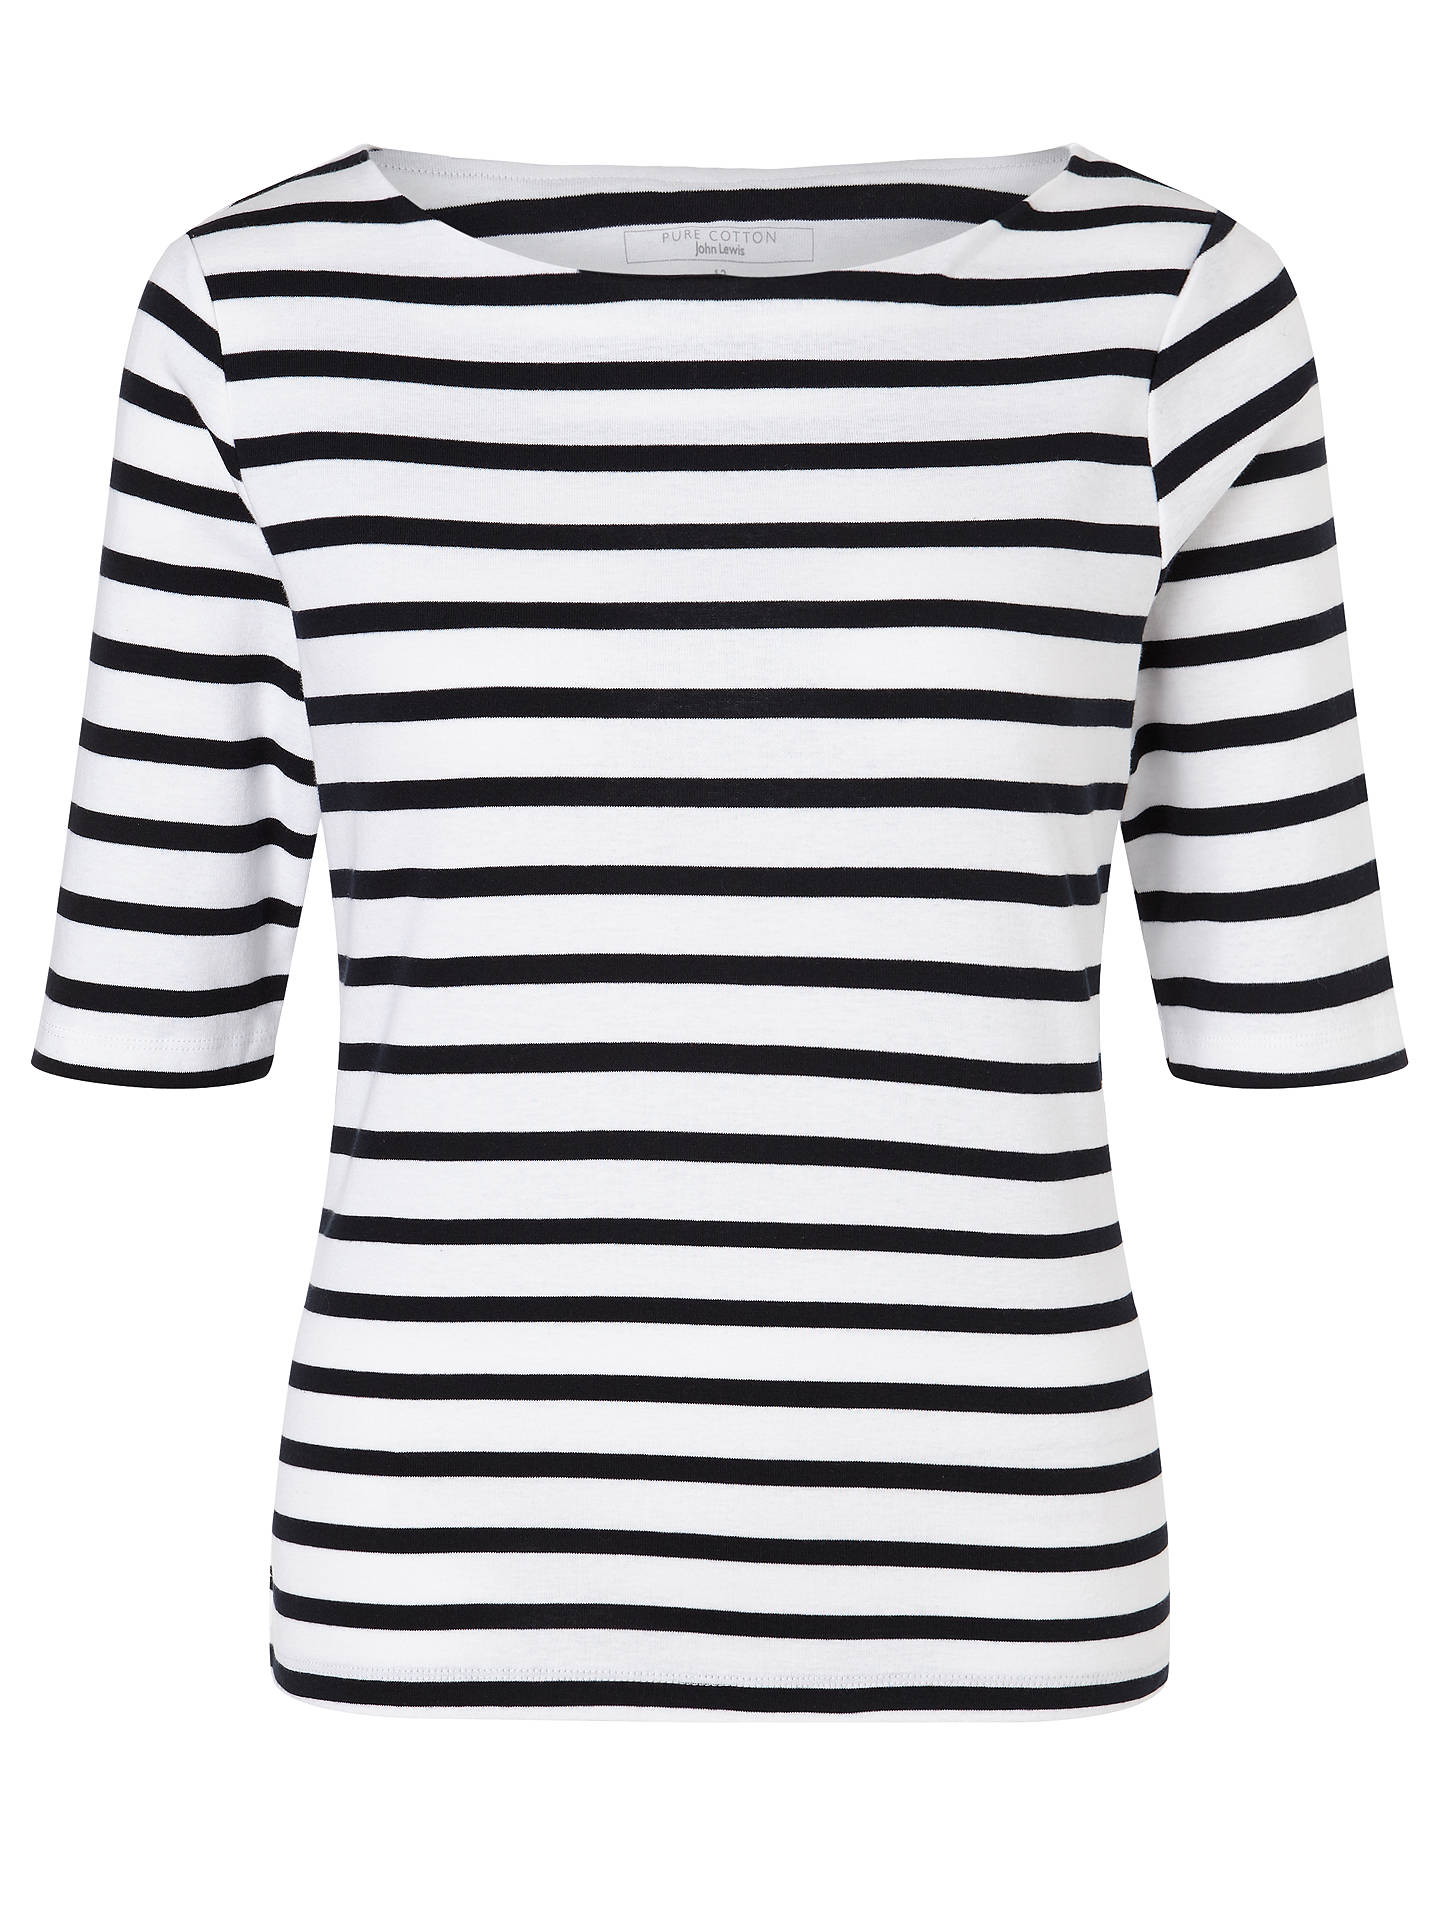 BuyJohn Lewis & Partners Half-Sleeve Breton Stripe Top, White/Navy, 8 Online at johnlewis.com